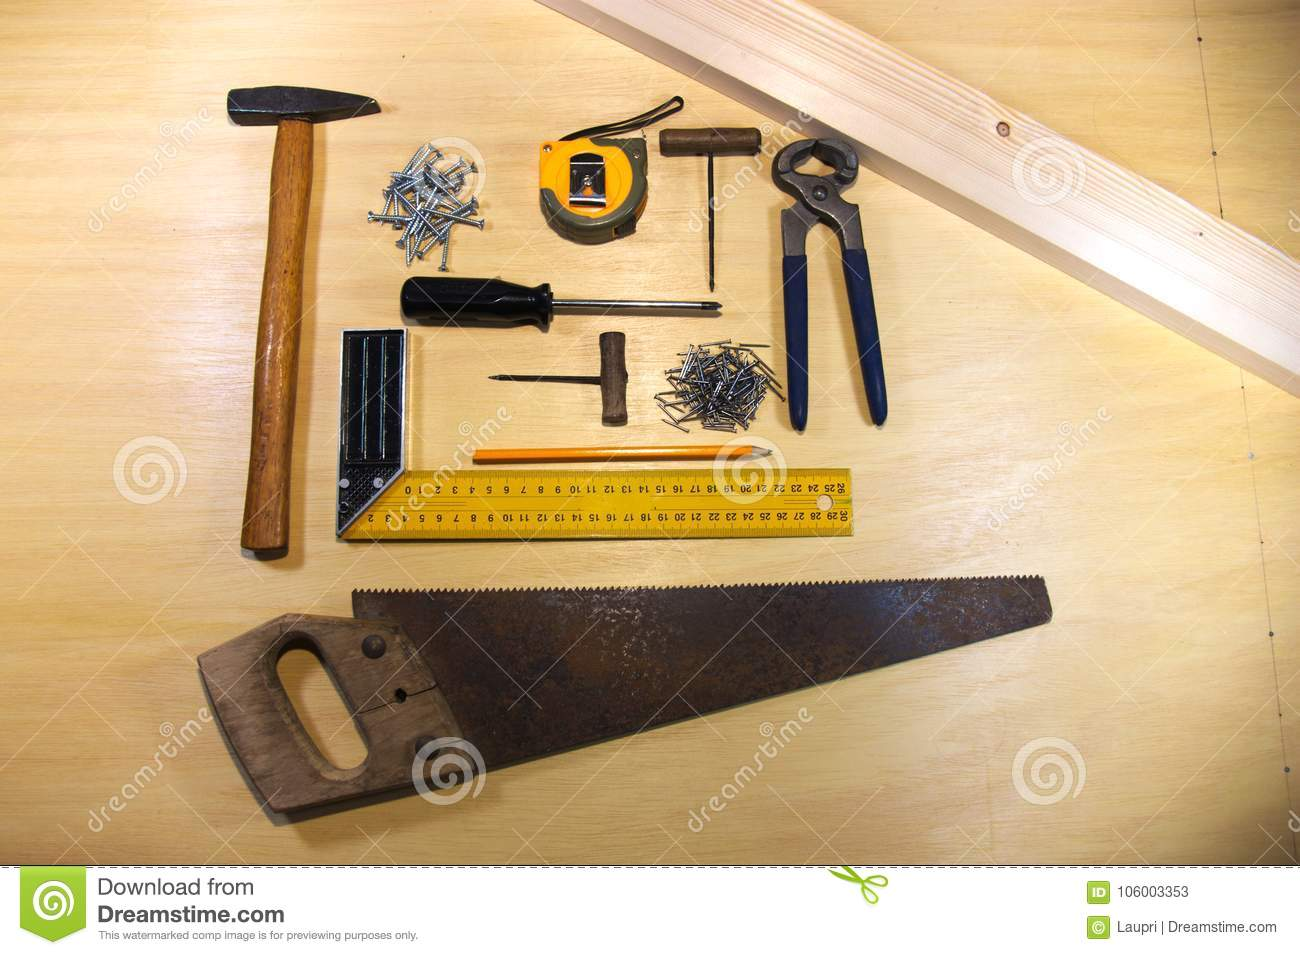 Tools For Carpentry On The Table Stock Image - Image of bracket ...